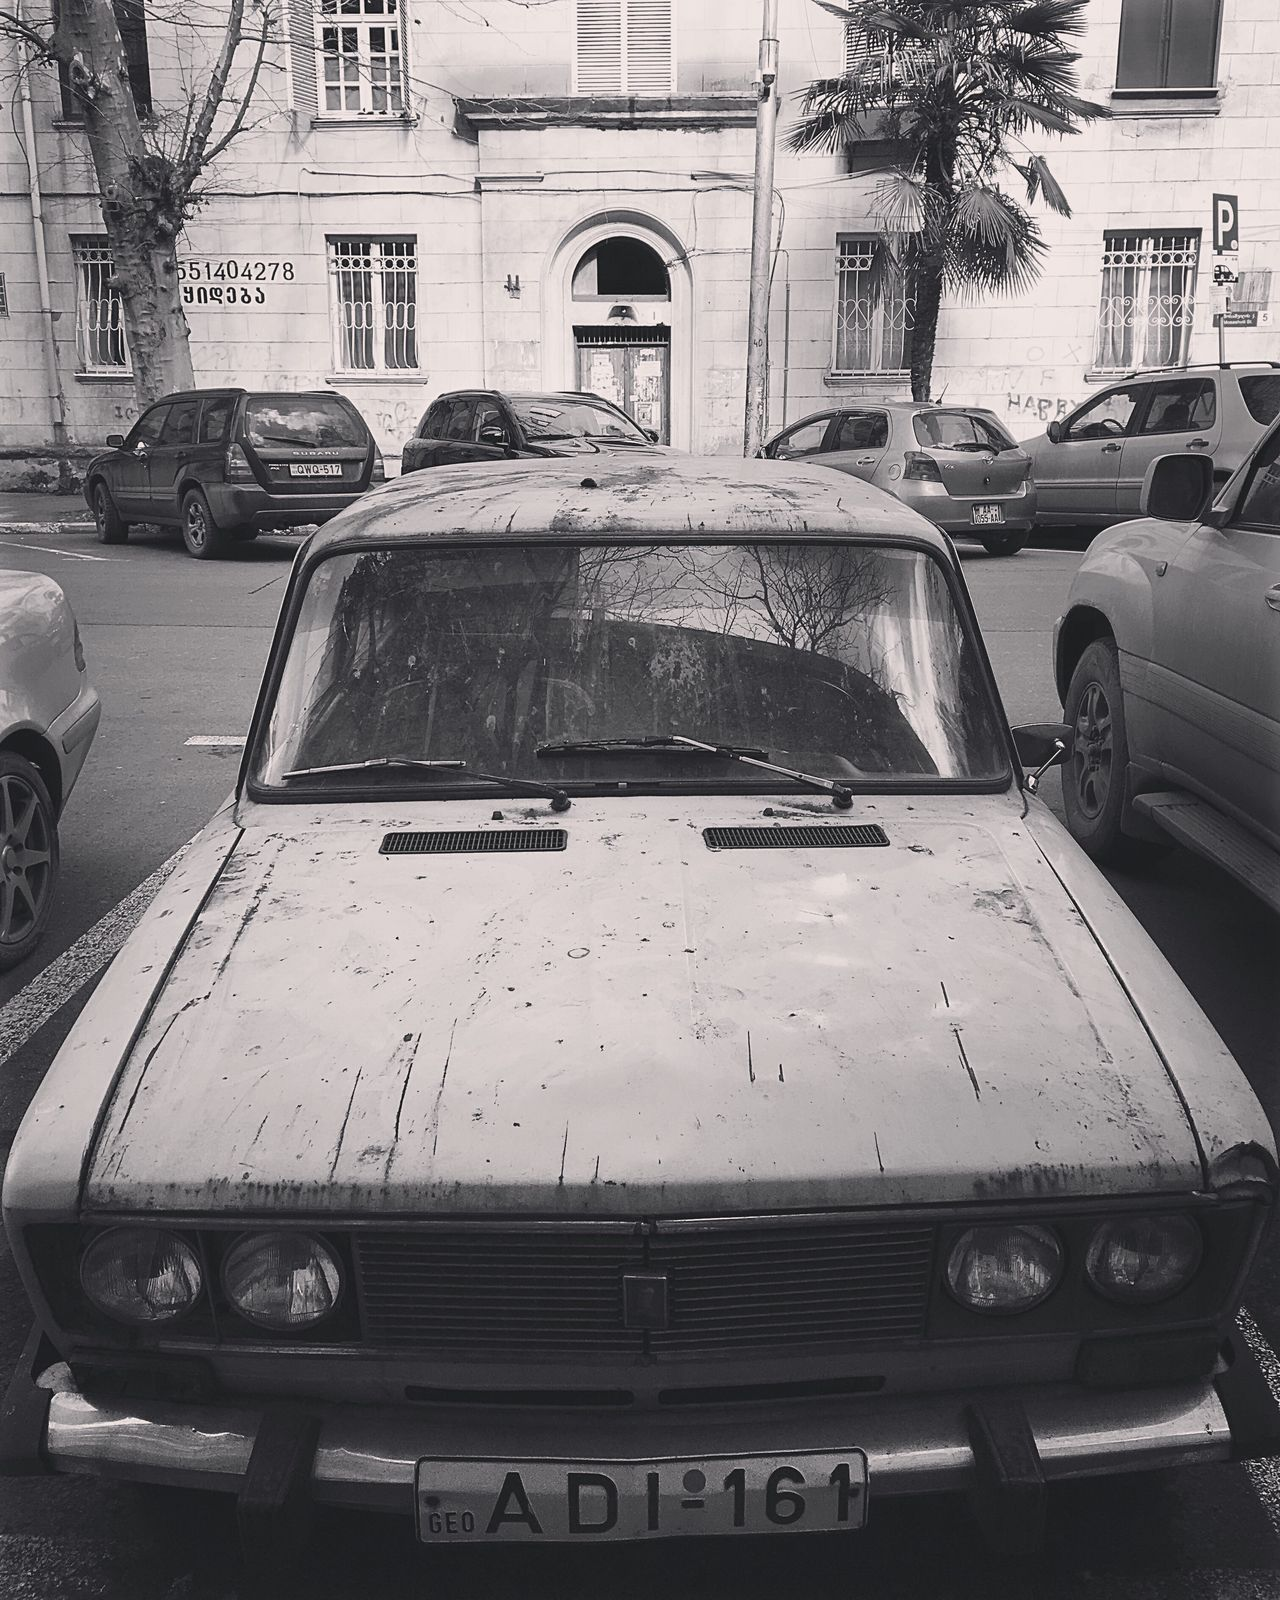 Blackandwhite Photography Old Car Transportation Mode Of Transport Land Vehicle City Day No People Outdoors Tbilisi